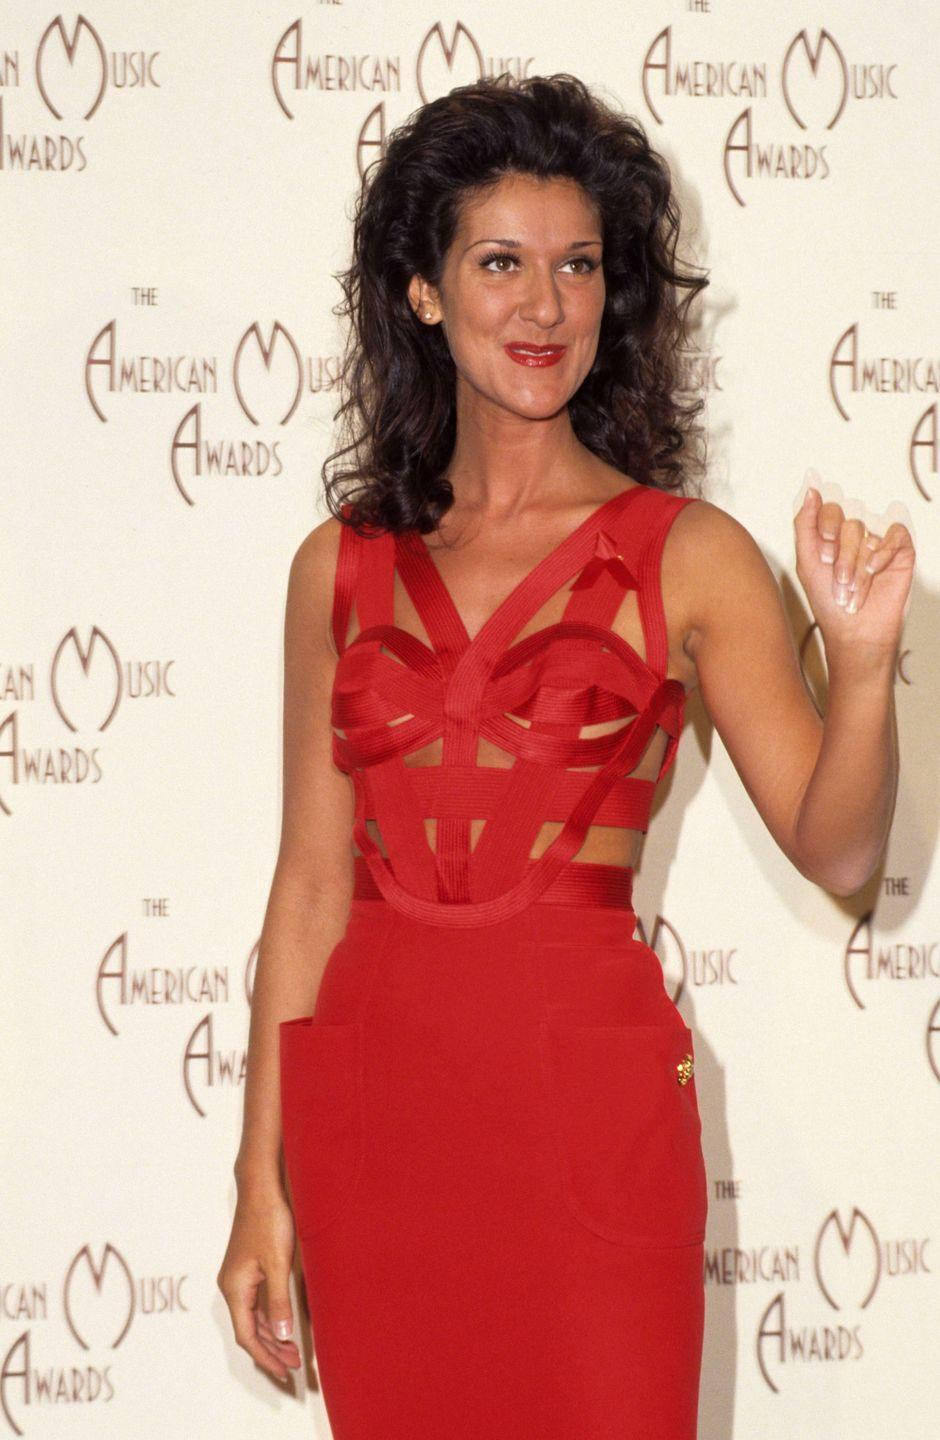 <p>Celine stuns in a sexy red bandage dress for the American Music Awards. She kept her accessories minimalist, so all eyes were on her gown. </p>